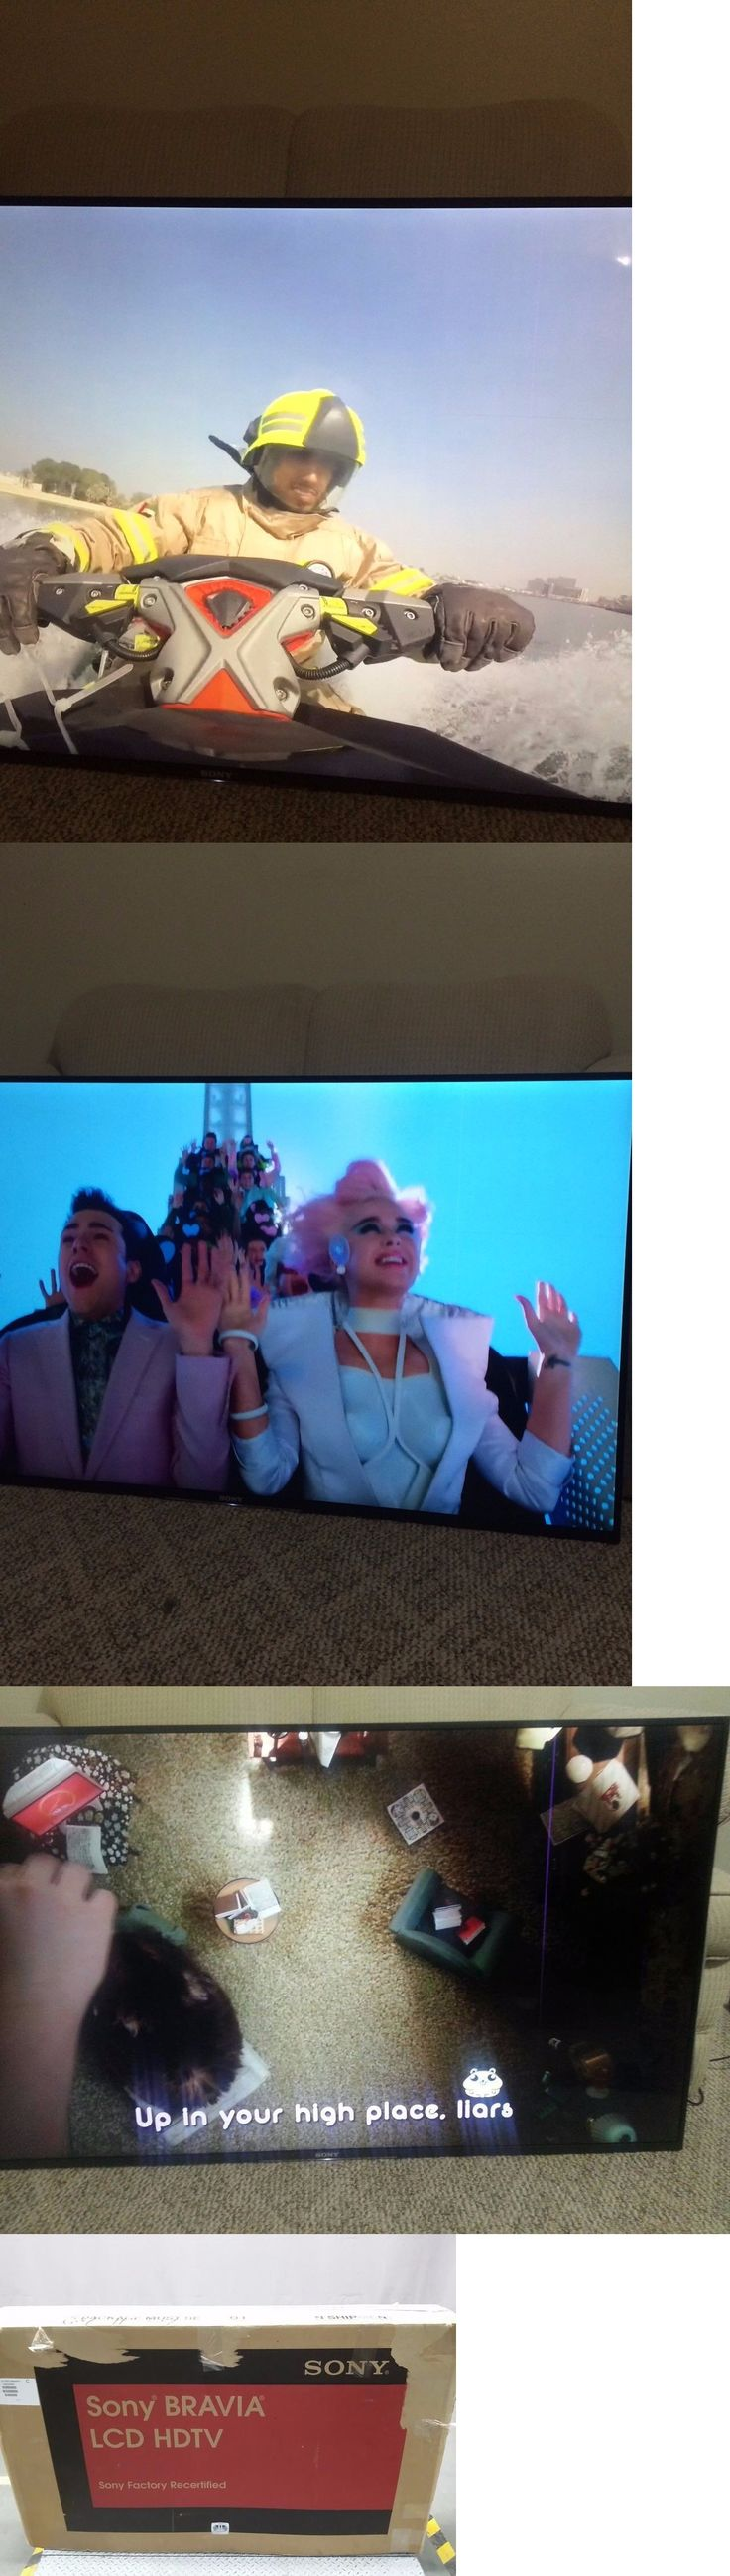 Televisions: Sony Xbr55x850d 55 4K Hdr Ultra Hd Smart Tv With Wifi Open Box BUY IT NOW ONLY: $500.0